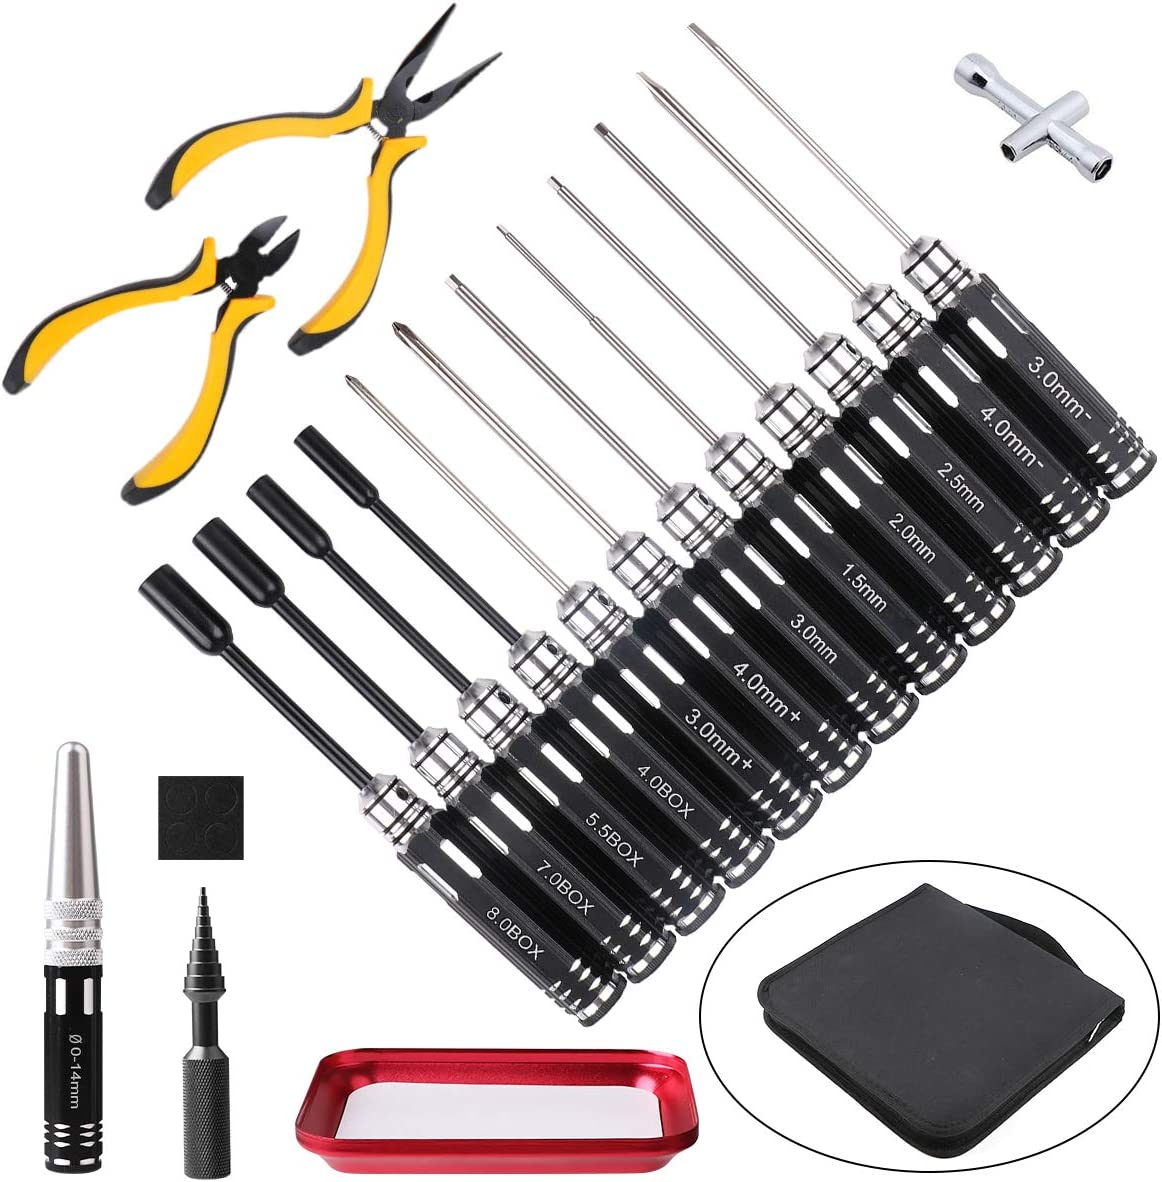 FPVERA 8 in 1 Hex Screwdrivers RC Screwdriver Tools Kit for RC Helicopter RC Boat Rc Cars